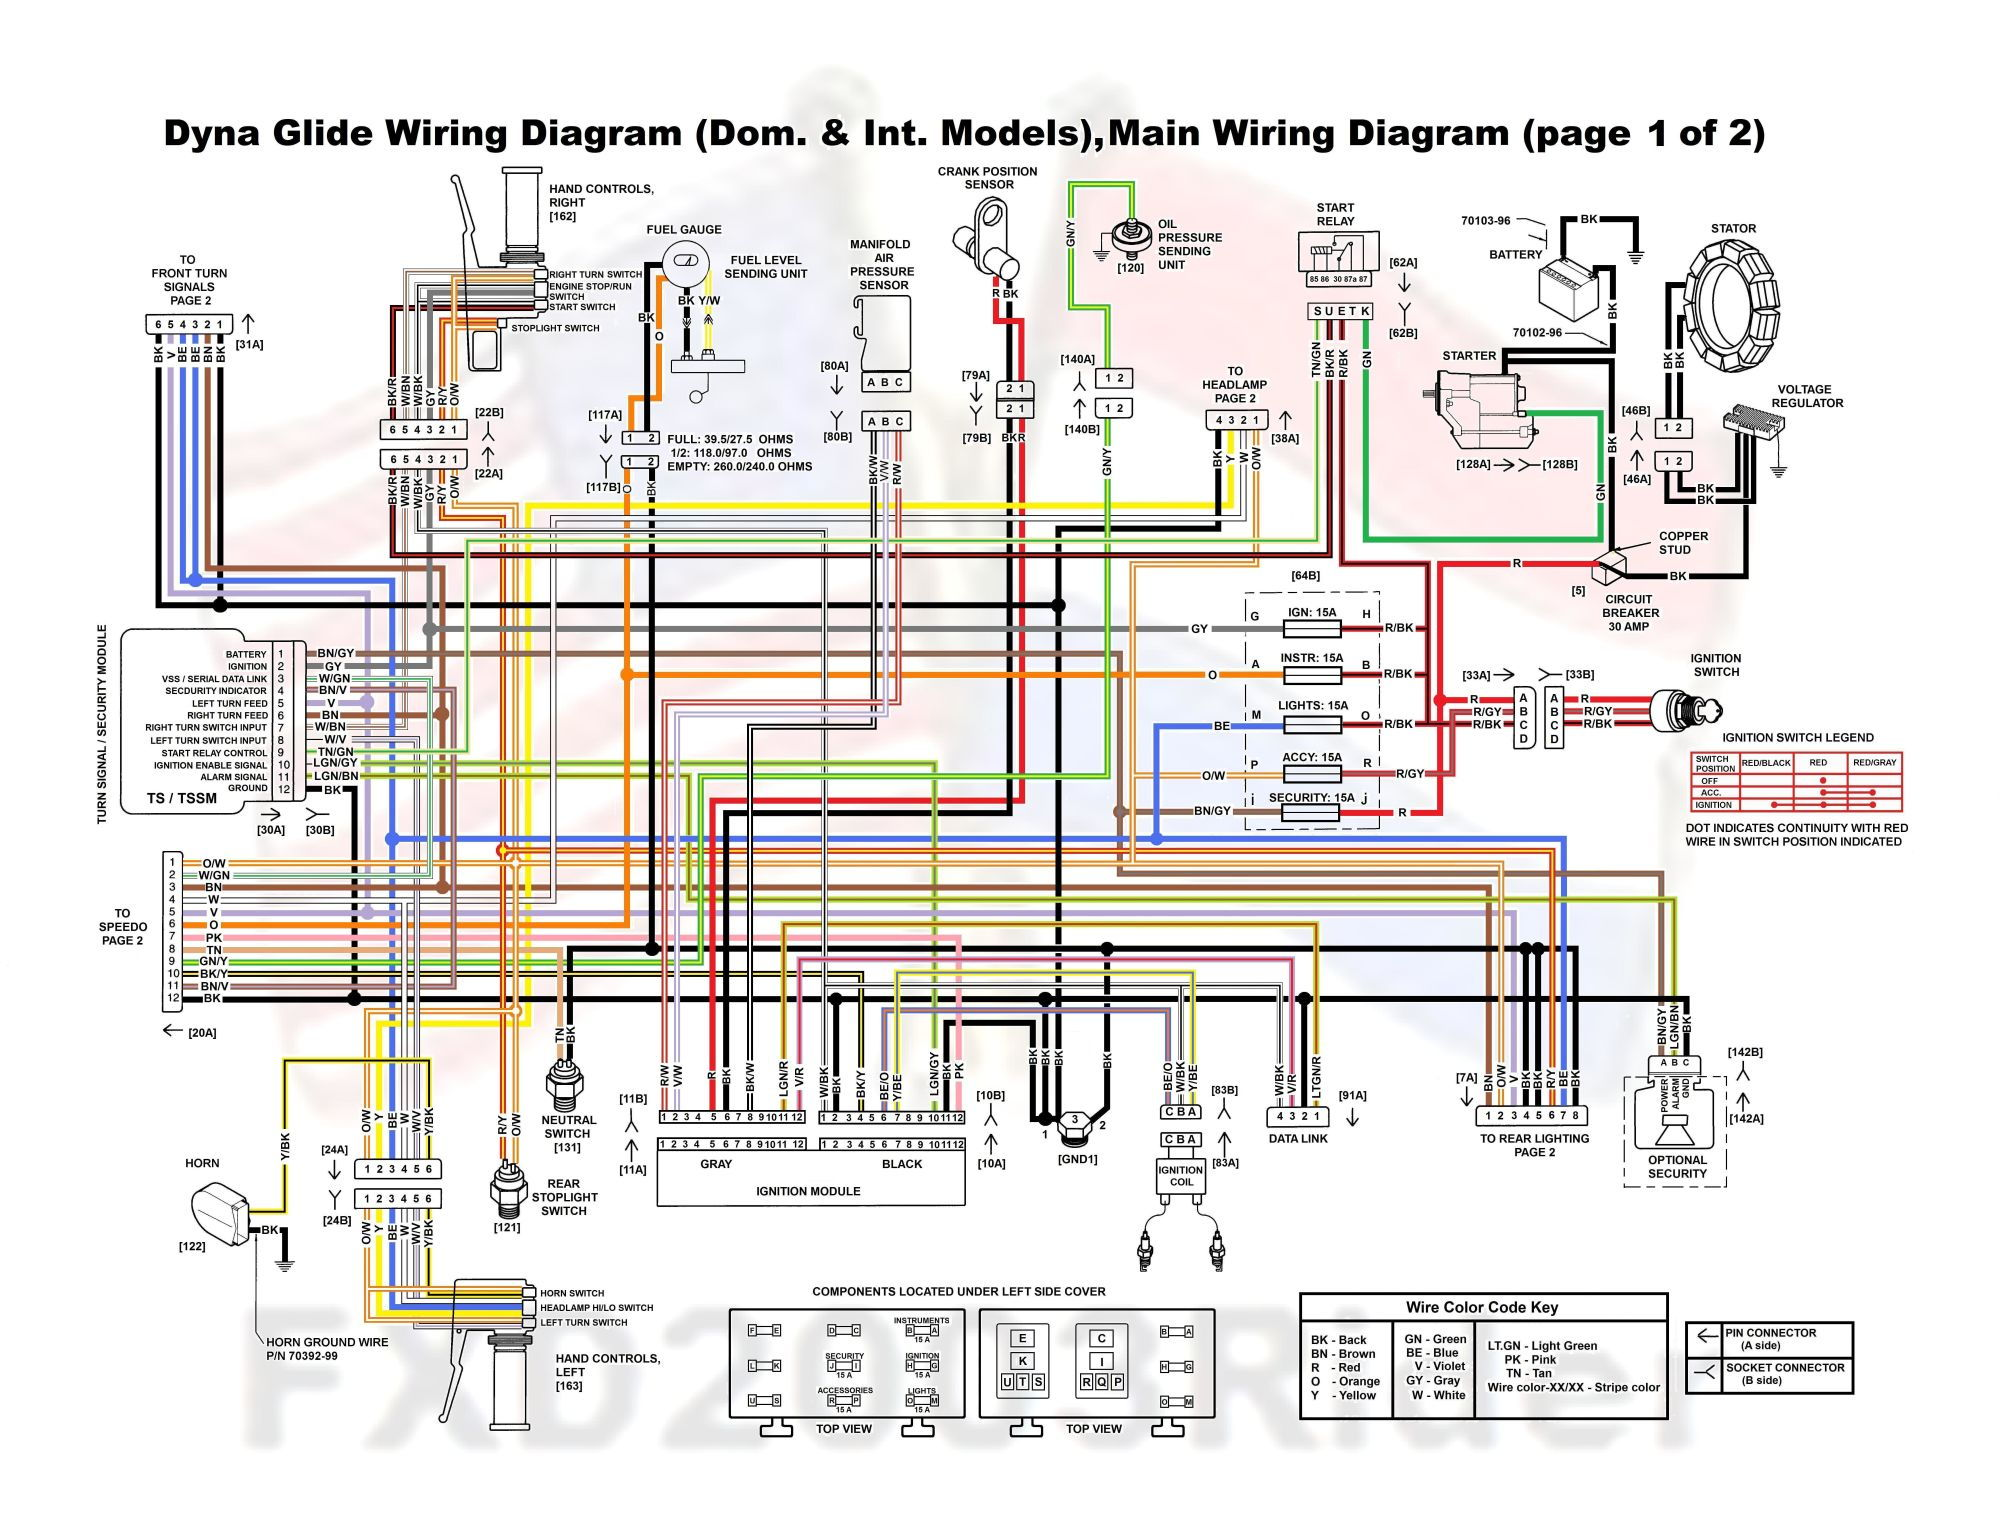 Wiring Diagram For 2001 Dyna Fxd - Wiring Diagram Perfomance on 99 harley wiring diagram, 1989 harley wiring diagram, 1999 harley ignition diagram,